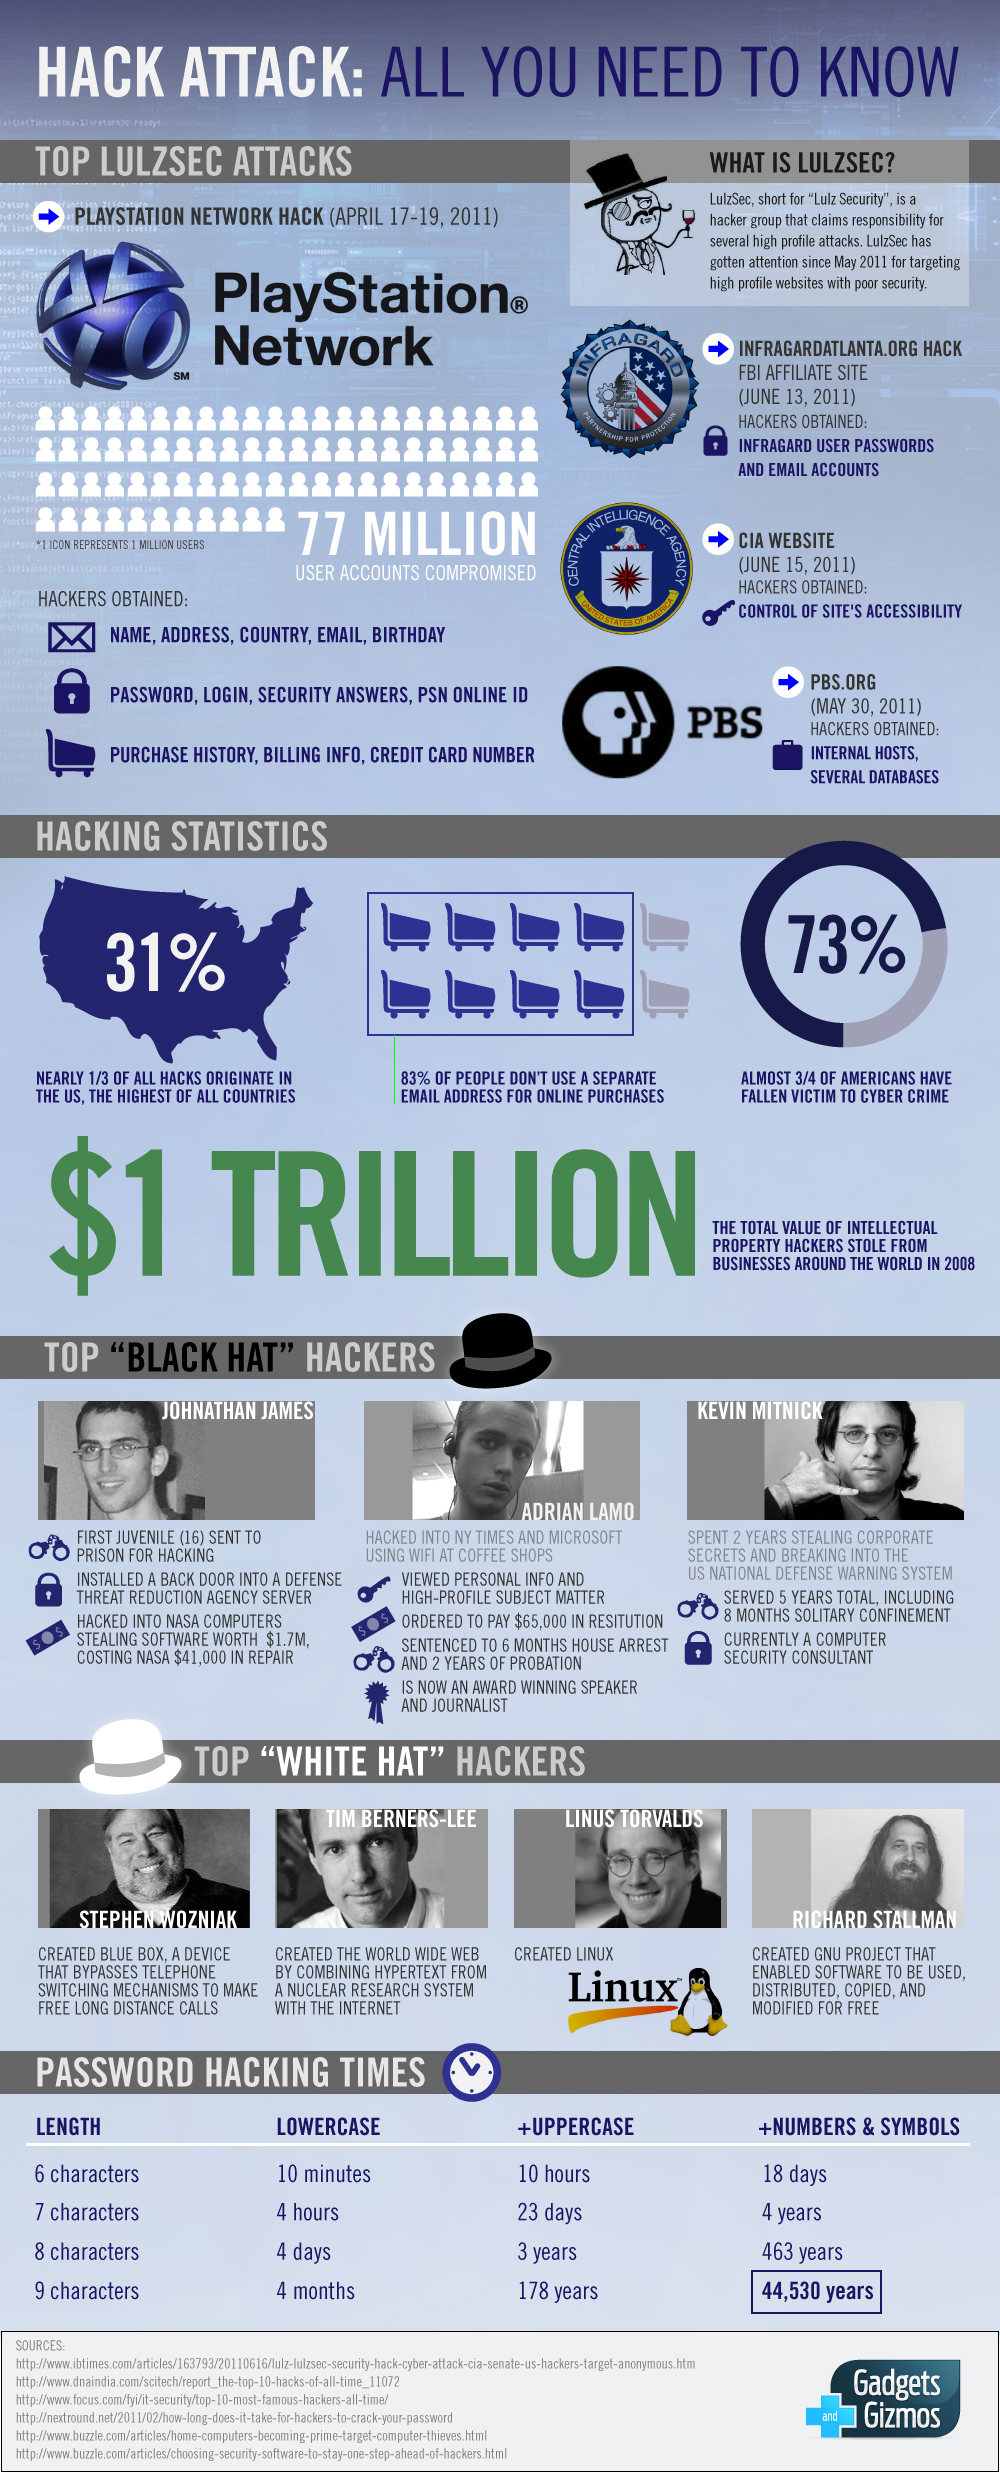 Lulzsec hacking attack